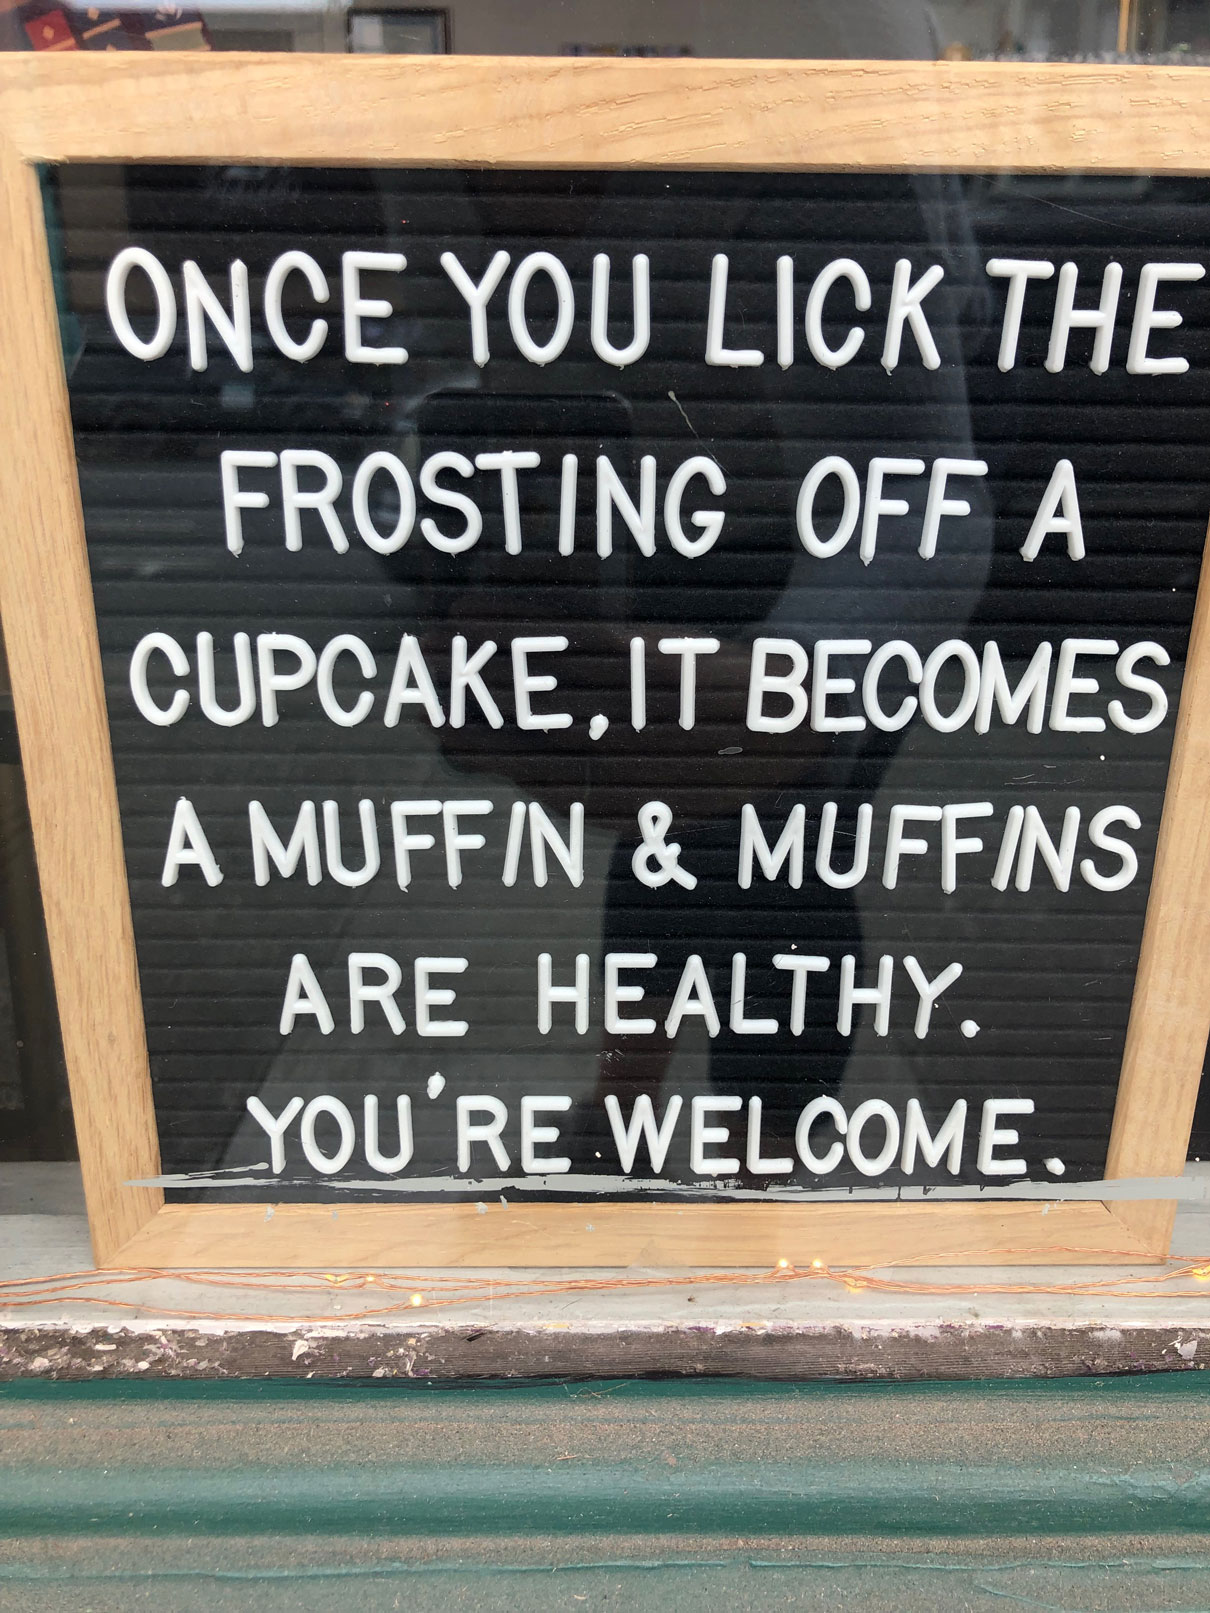 Once you lick the frosting off a cupcake, it becomes a muffin & muffins are healthy. You're welcome.